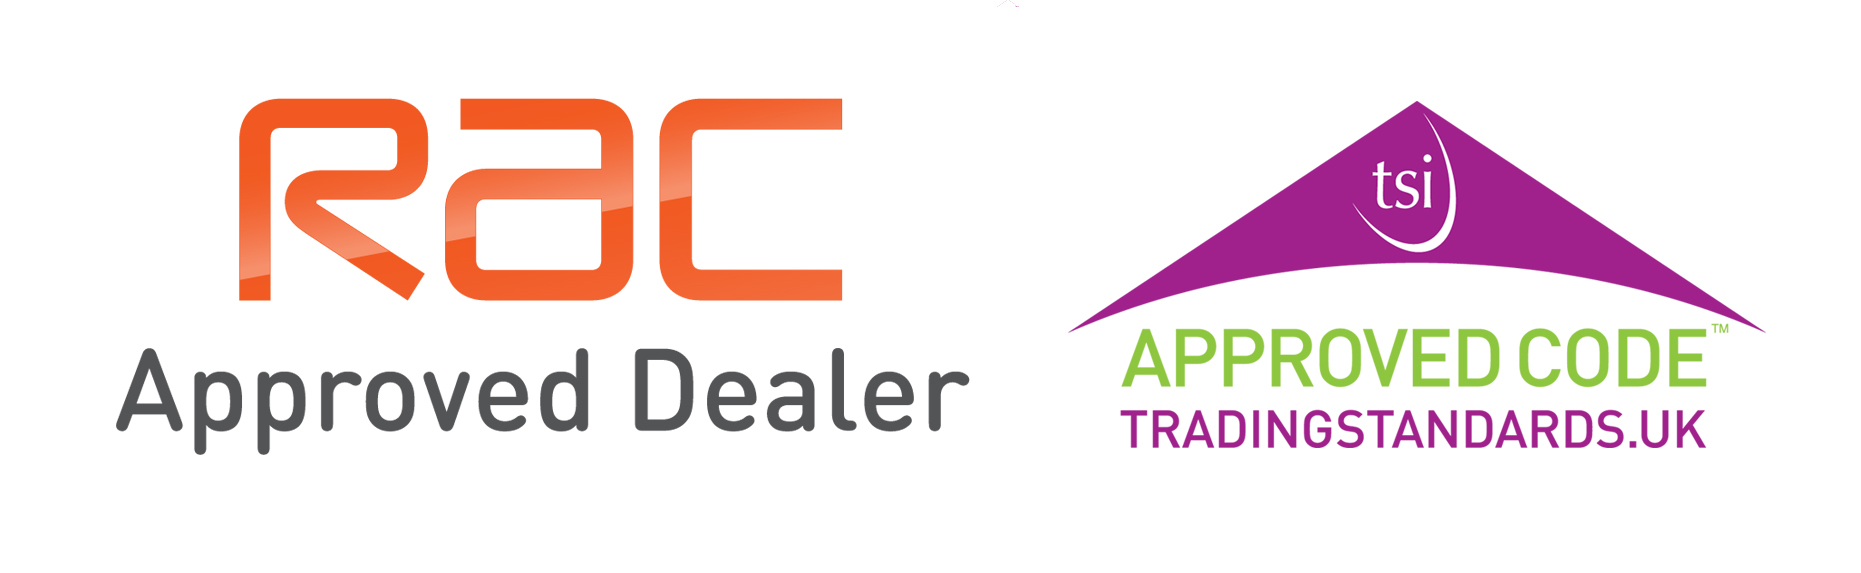 A3 Approved Dealer Ctsi Logo Rgb Jpg